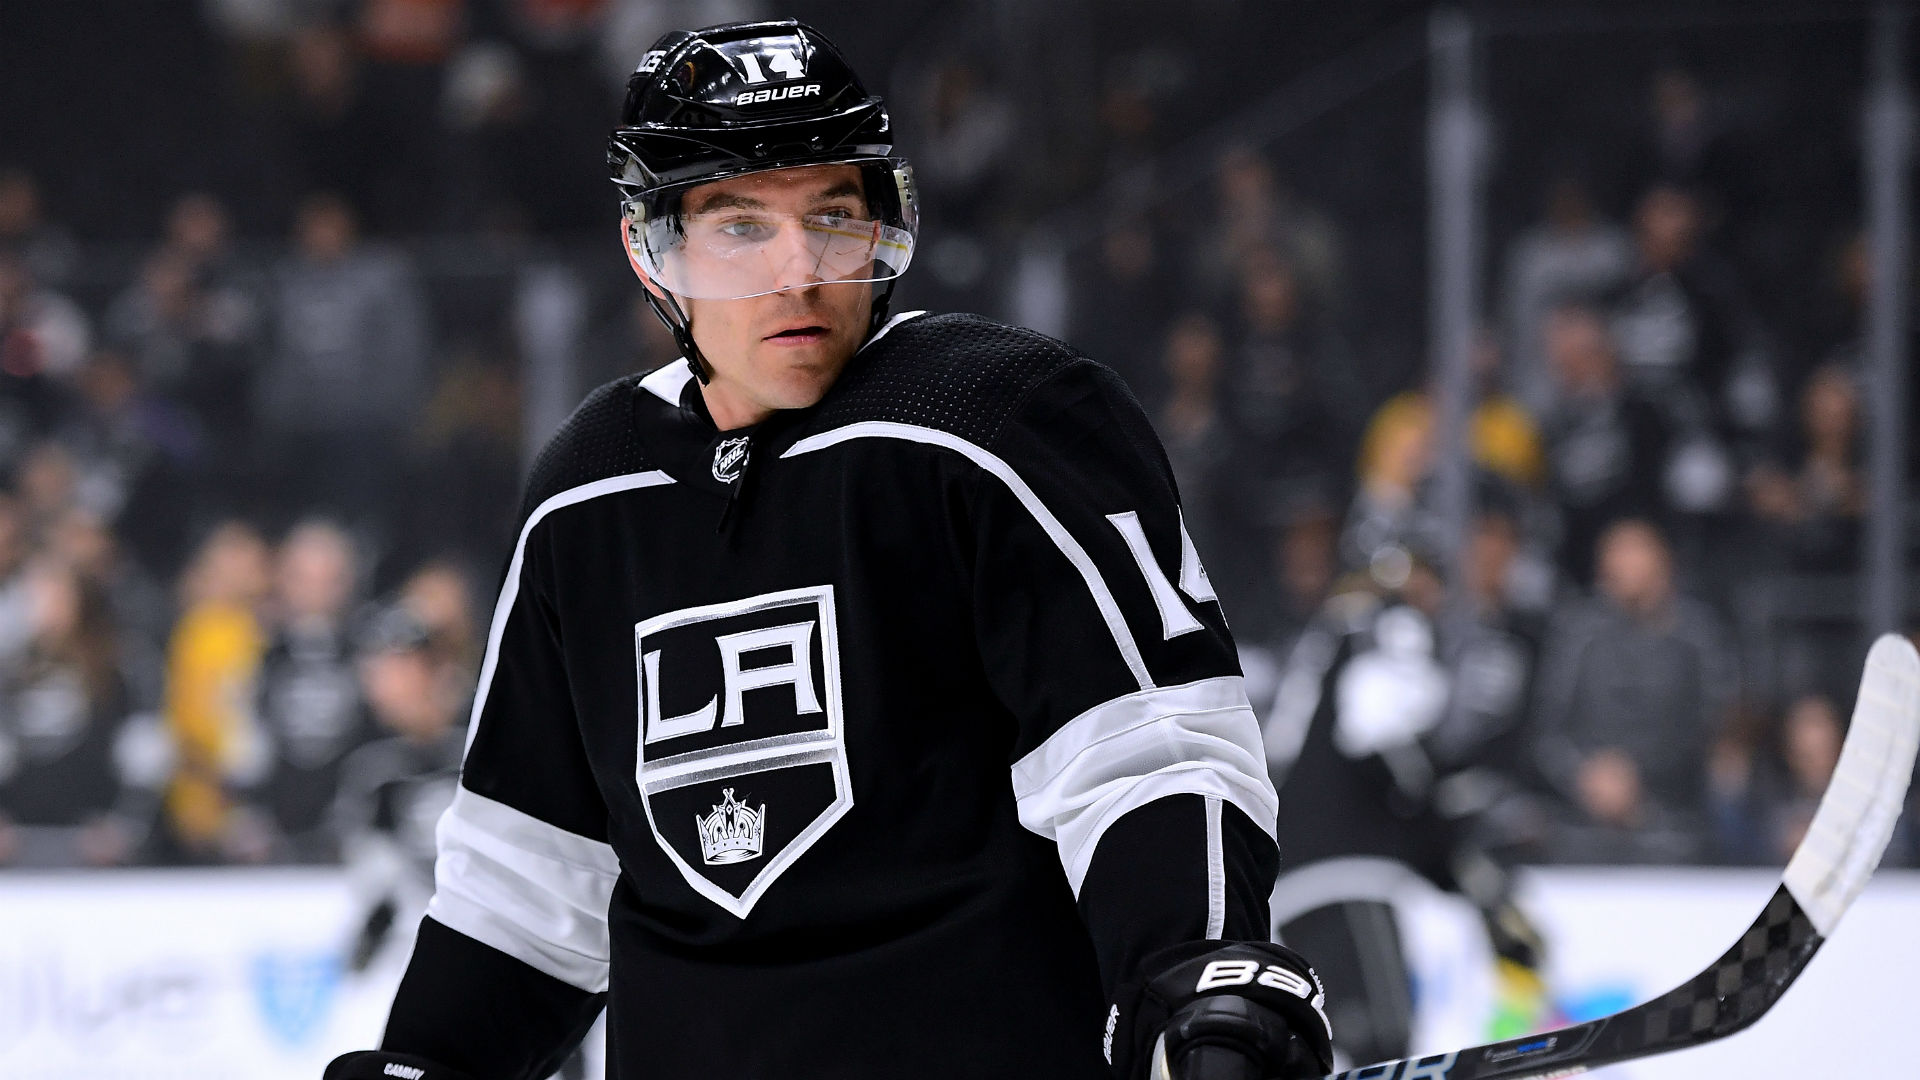 Cammalleri traded to Oilers by Kings for Jokinen